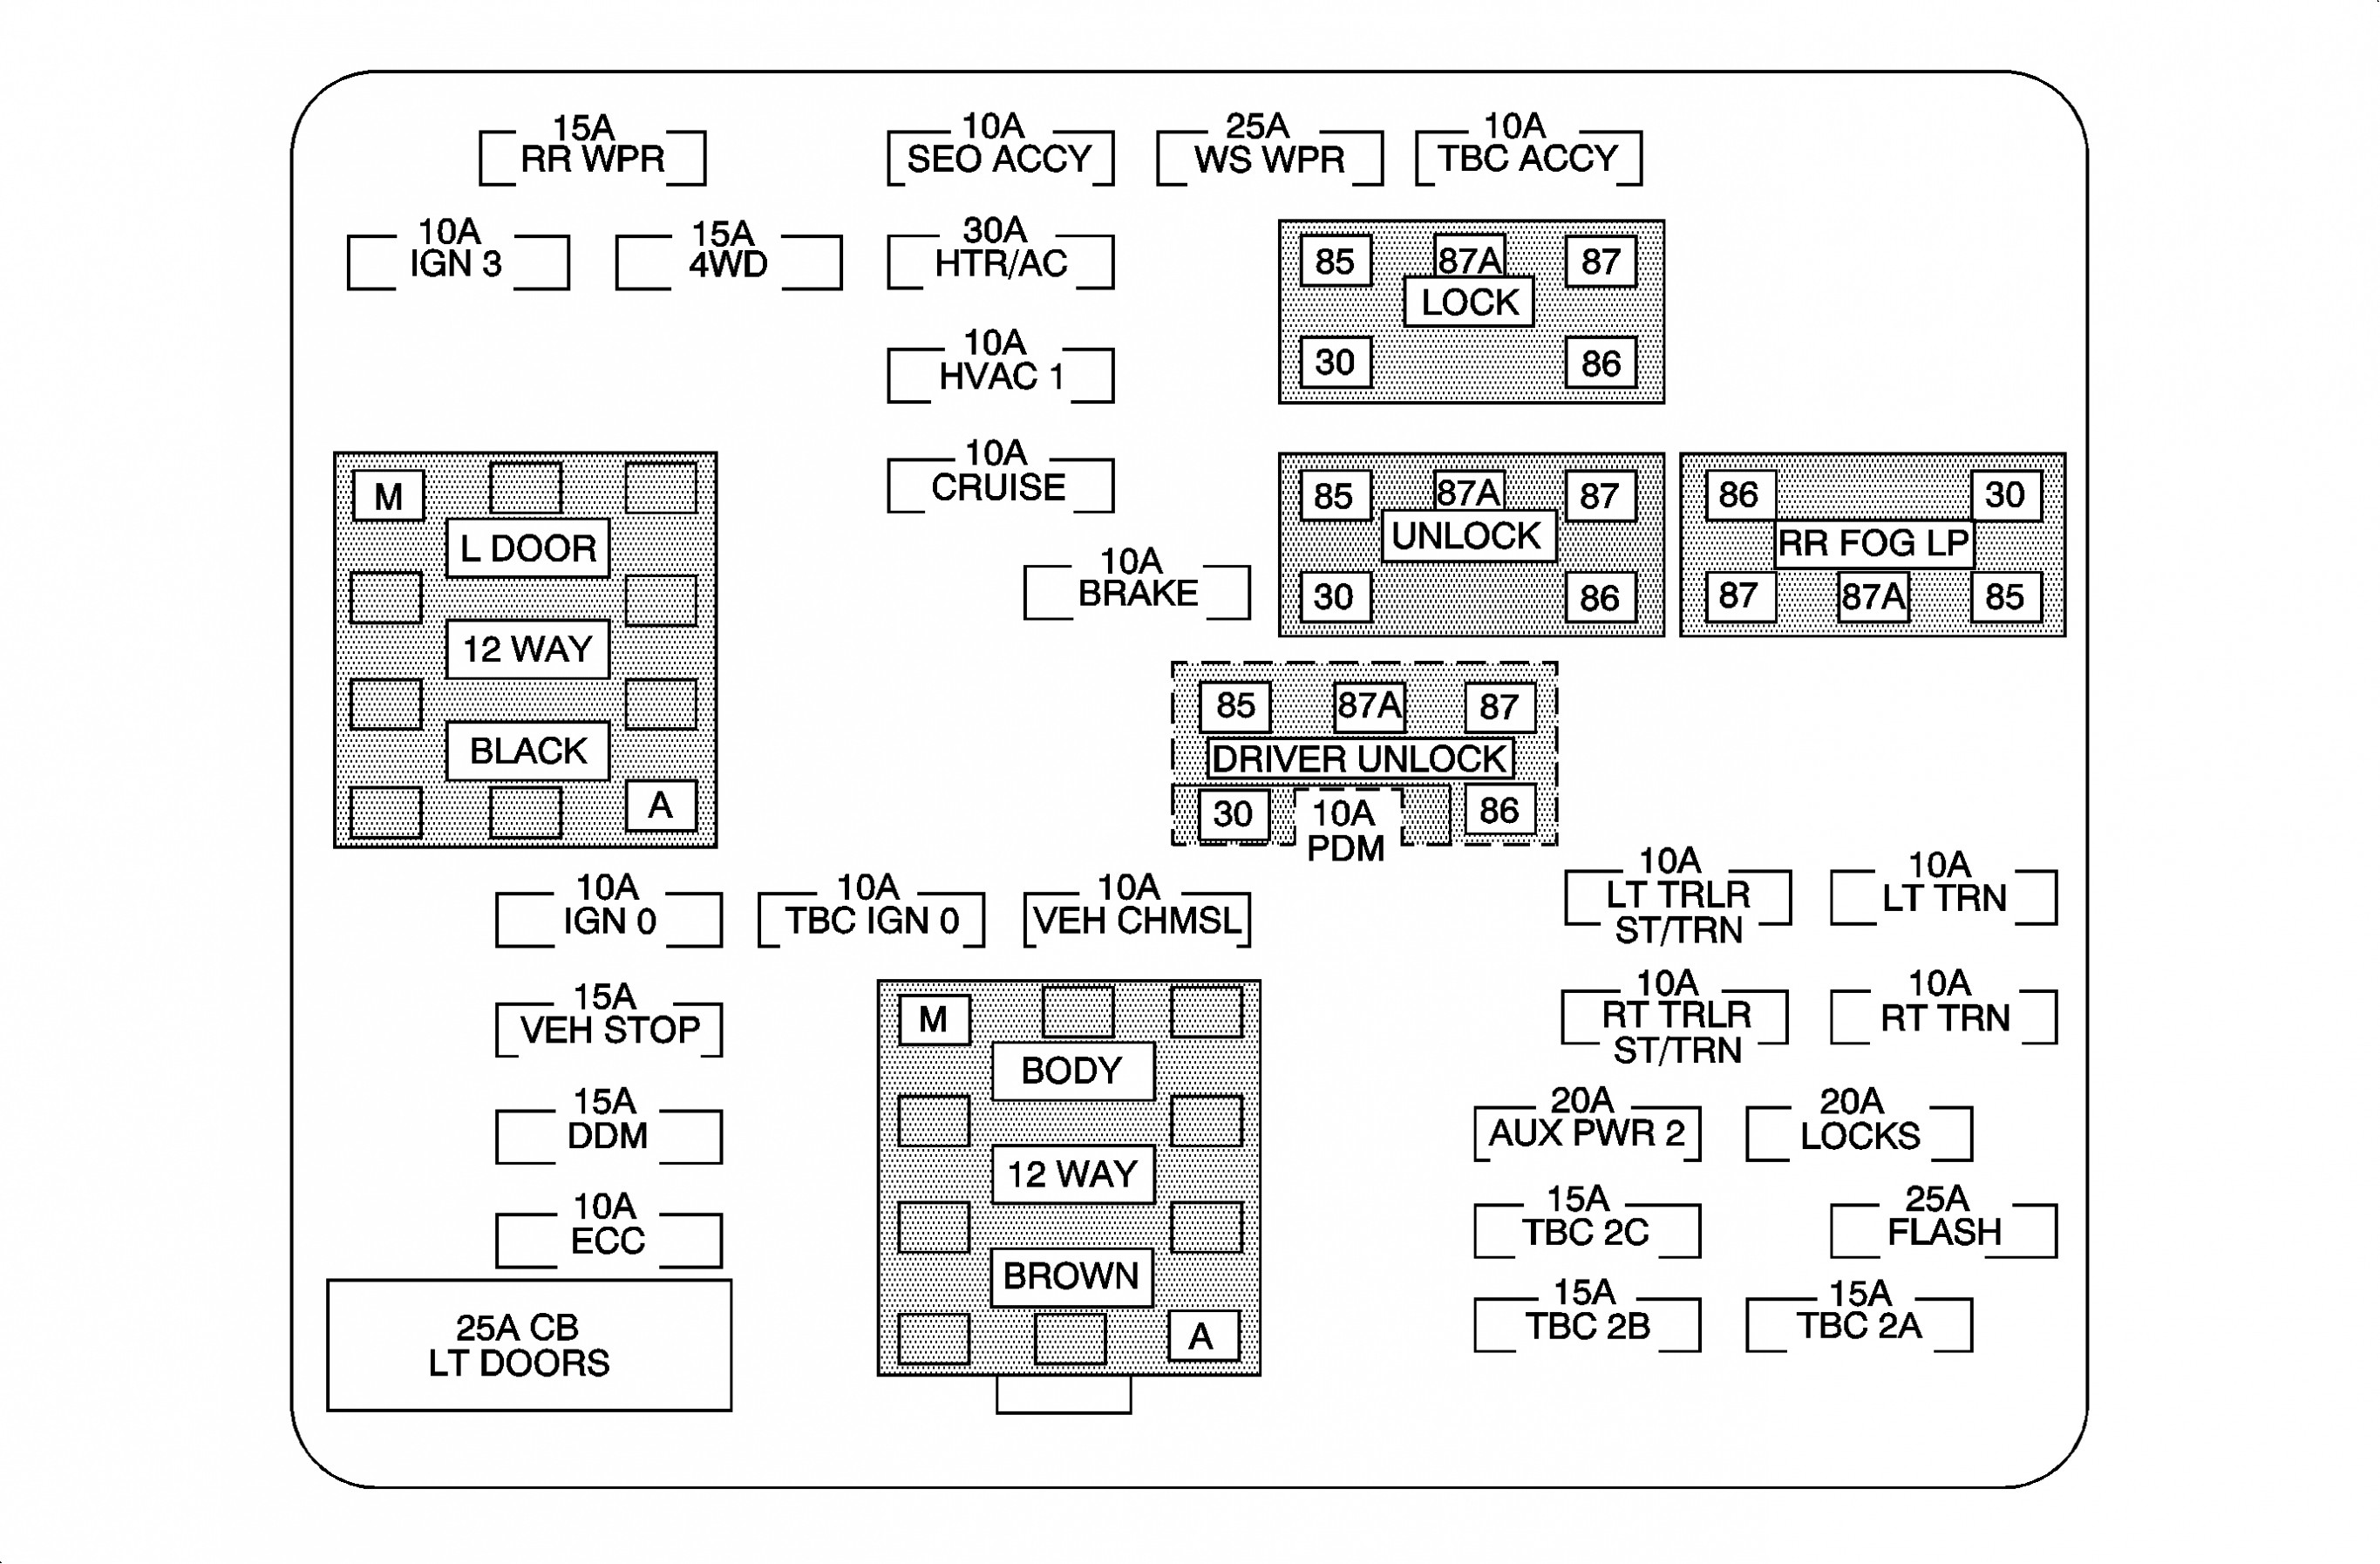 11 Chevy Silverado Fuse Box - Wiring Diagram Replace long-random -  long-random.miramontiseo.itlong-random.miramontiseo.it